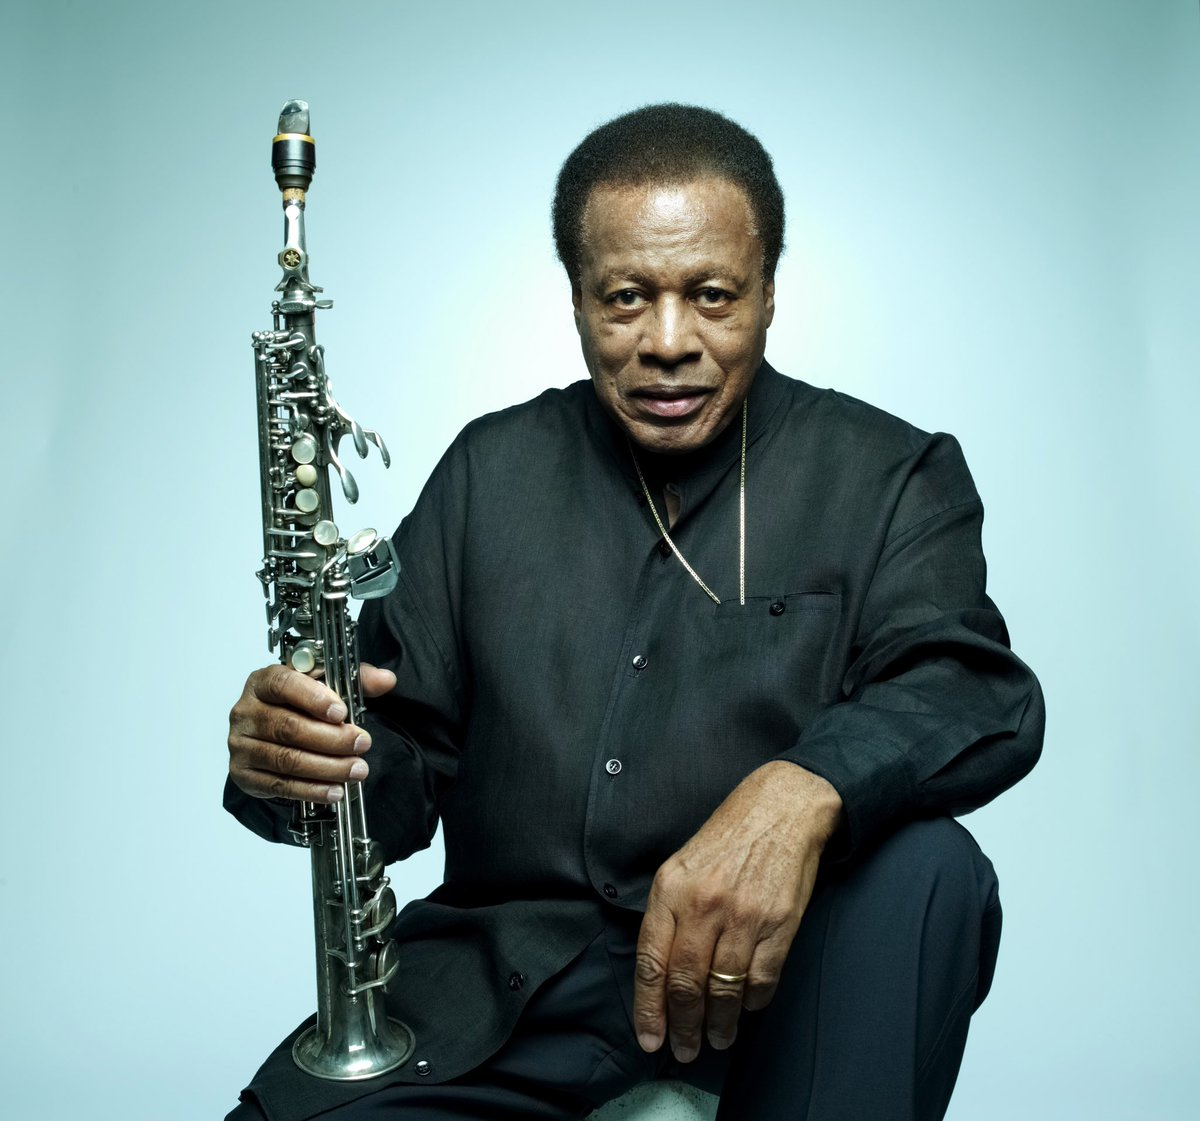 Happy 85th Birthday to the great !  Celebrate Wayne by spinning our playlist 'Wayne Shorter: The Finest' featuring highlights from his illustrious Blue Note career:   Pre-order hihttps://t.co/UdGQeeqde6s new triple album  out Sept. 14!#Emanon  https://t.co/6vY00uEy9y